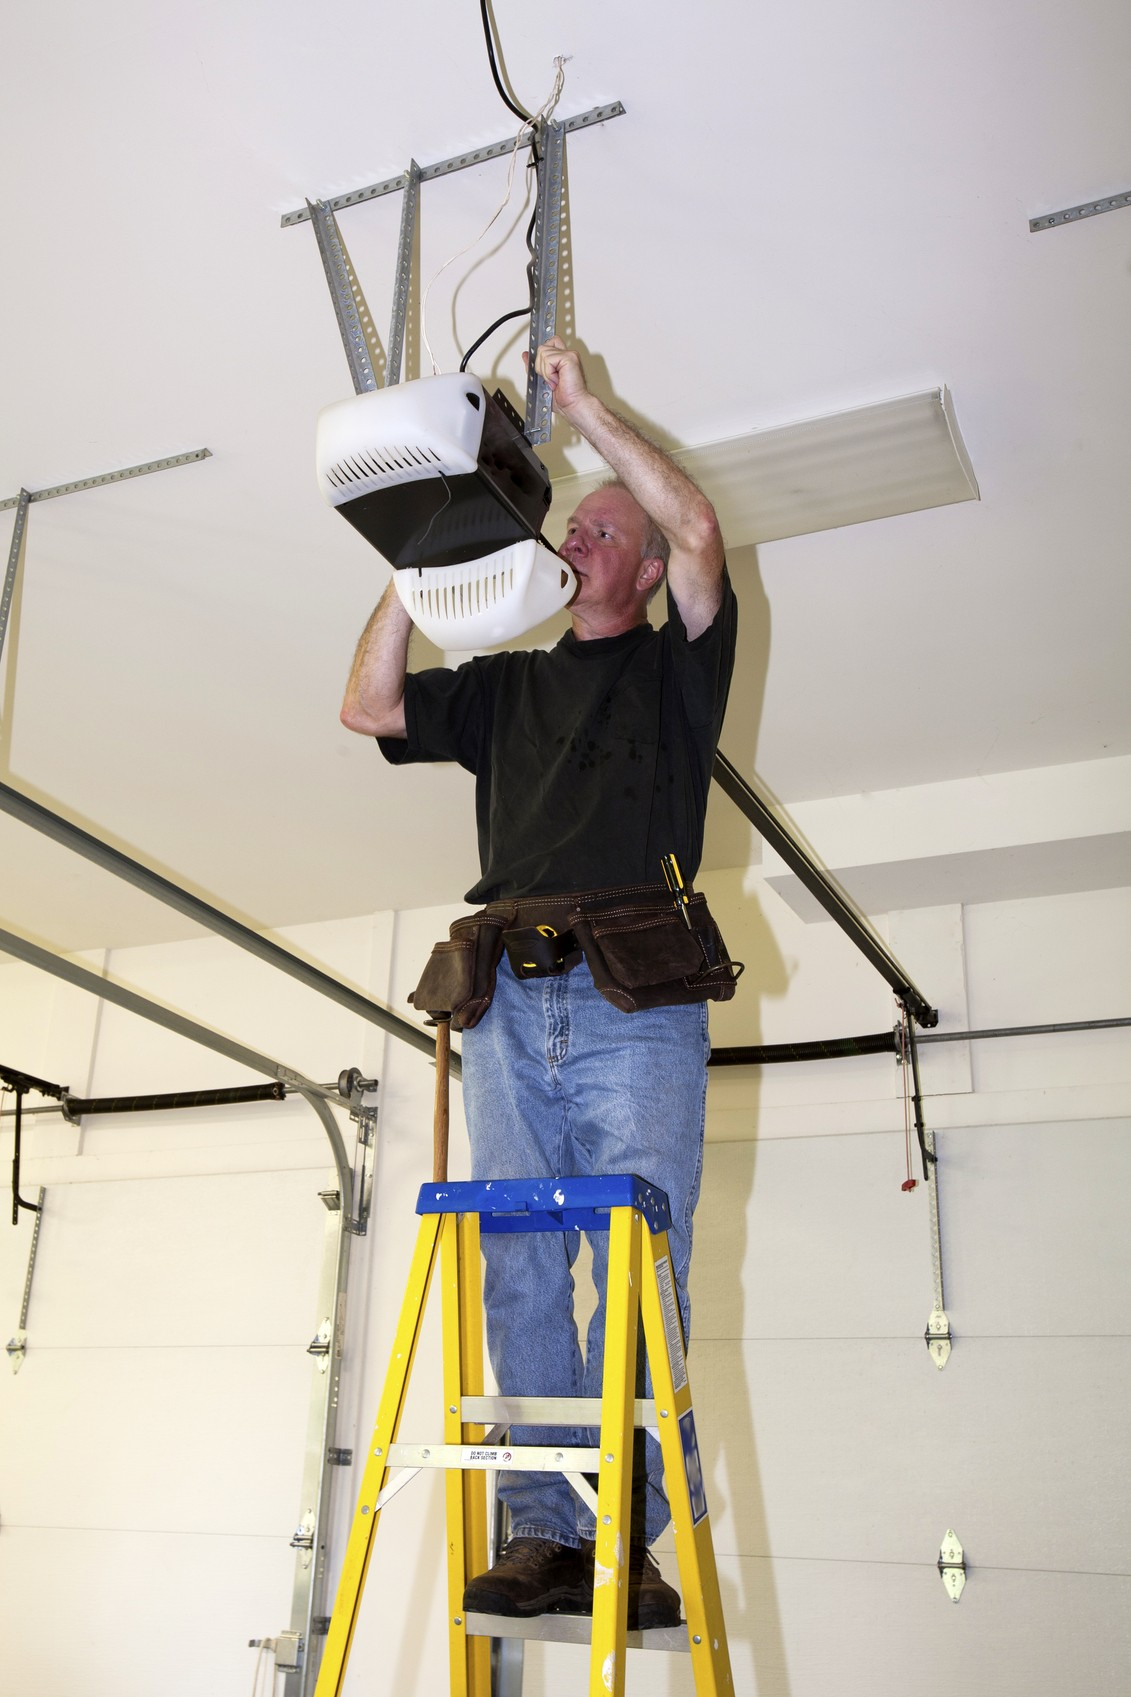 Man standing on a ladder fixing a mechanical garage door opener